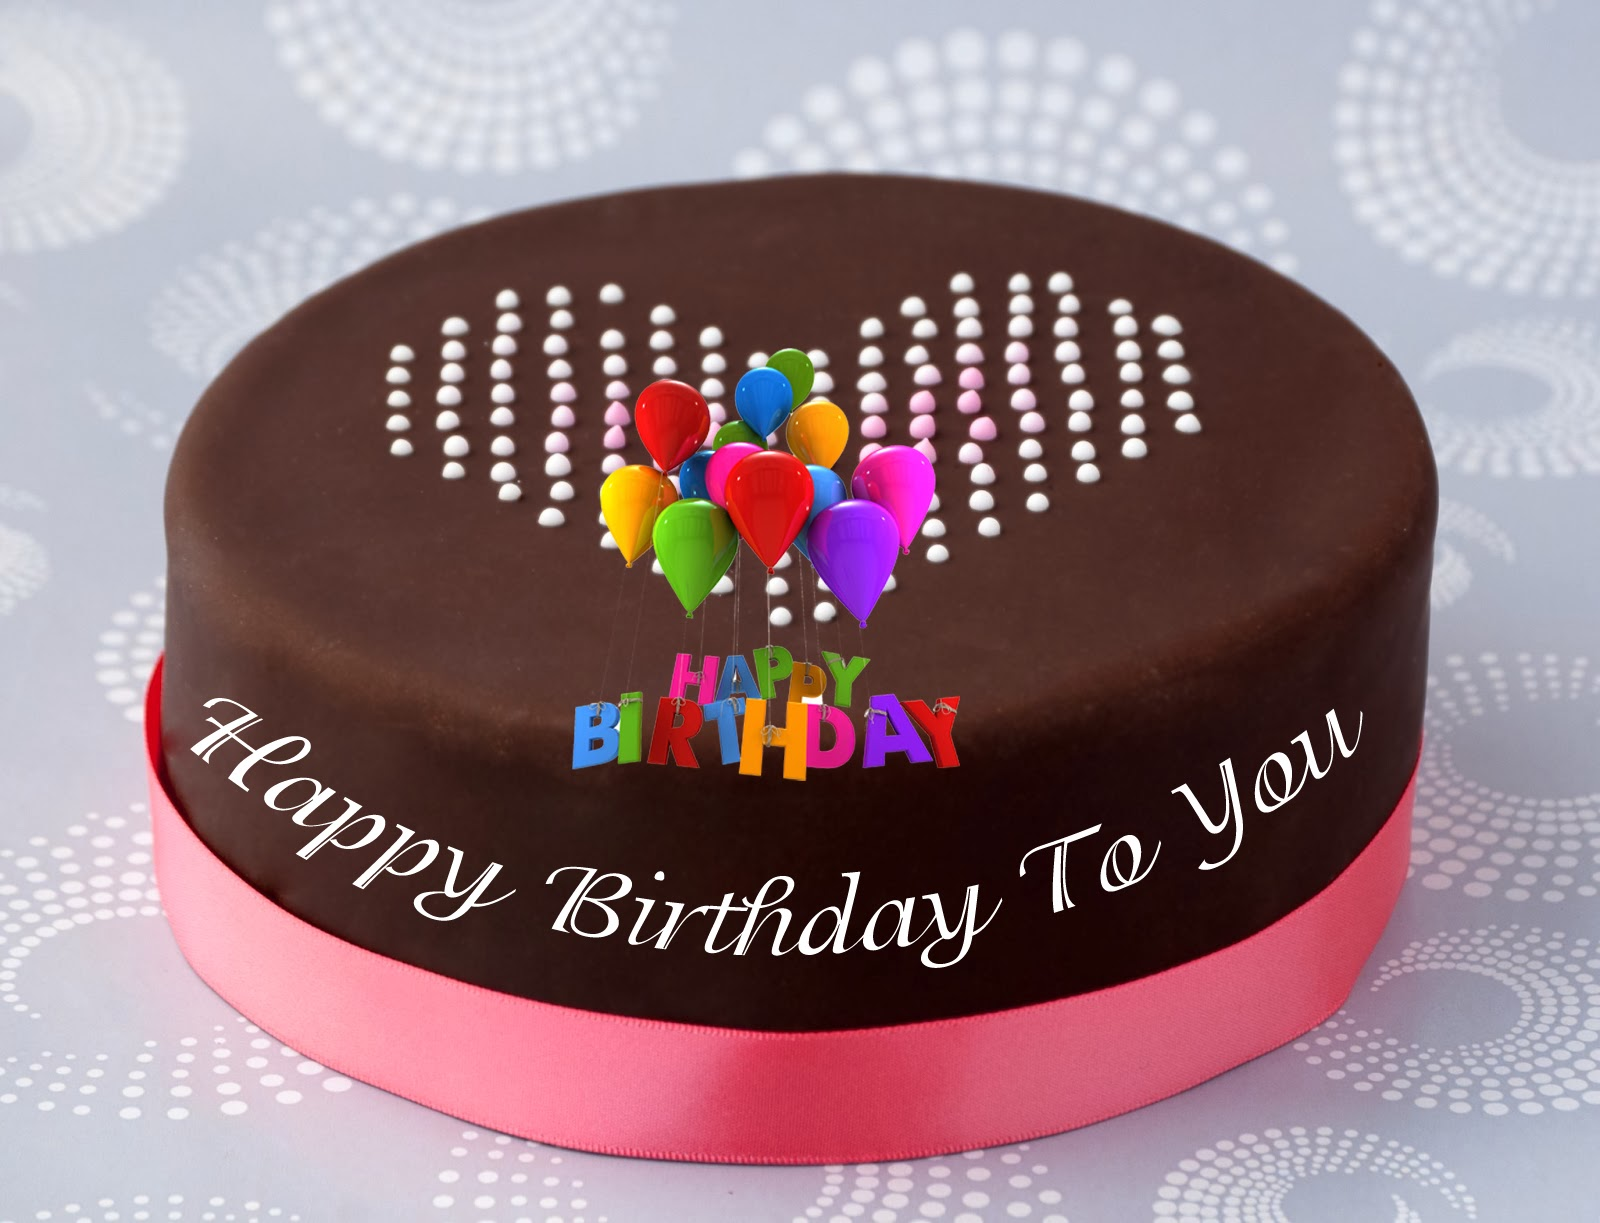 Cake Images Free Download Hd : Lovable Images: Happy Birthday Greetings free download ...